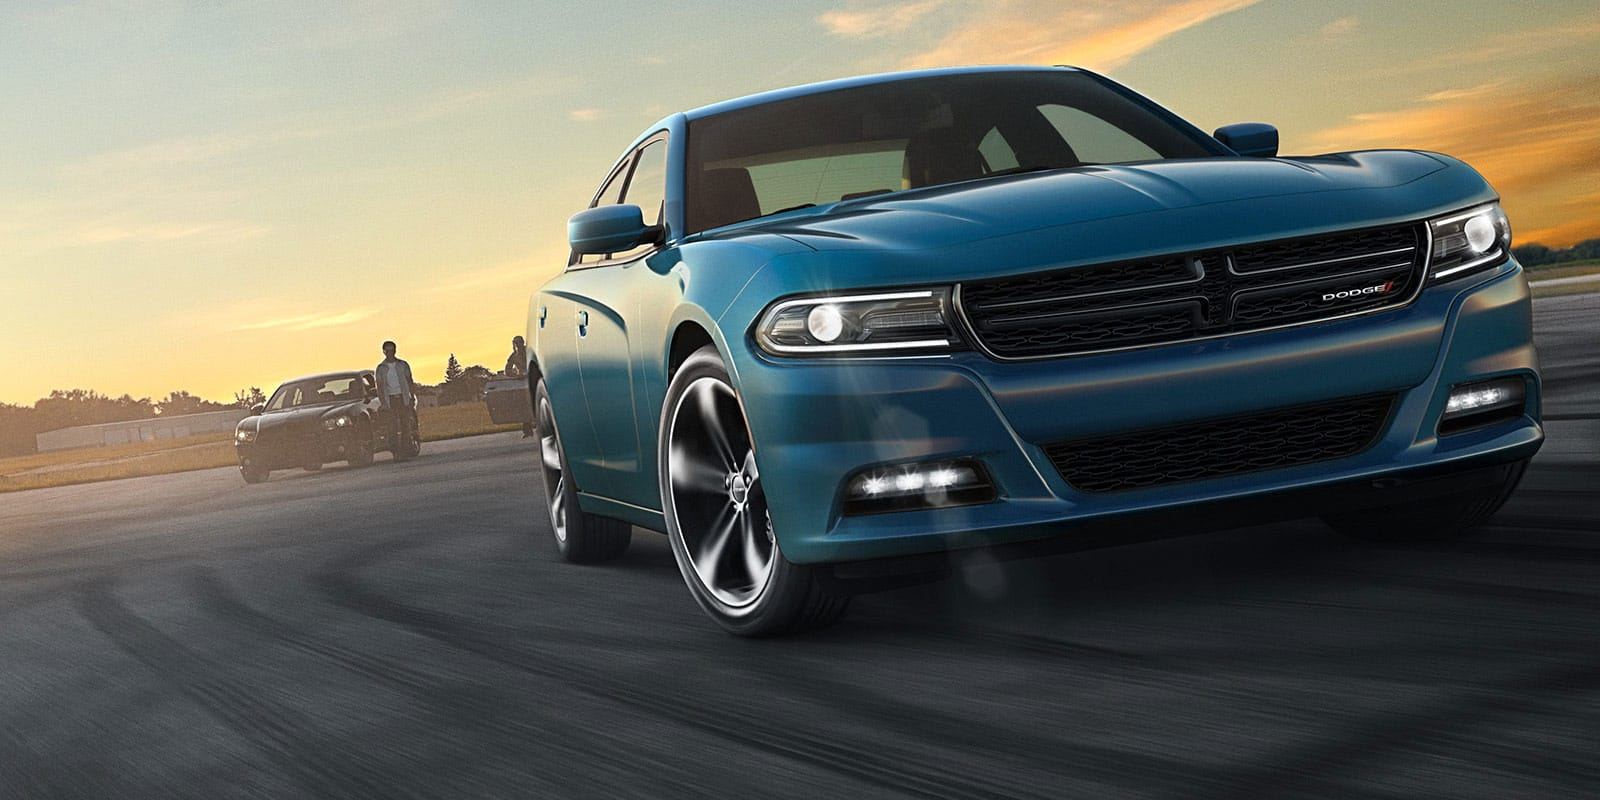 2016 dodge charger - 2016 Dodge Charger 2 Door